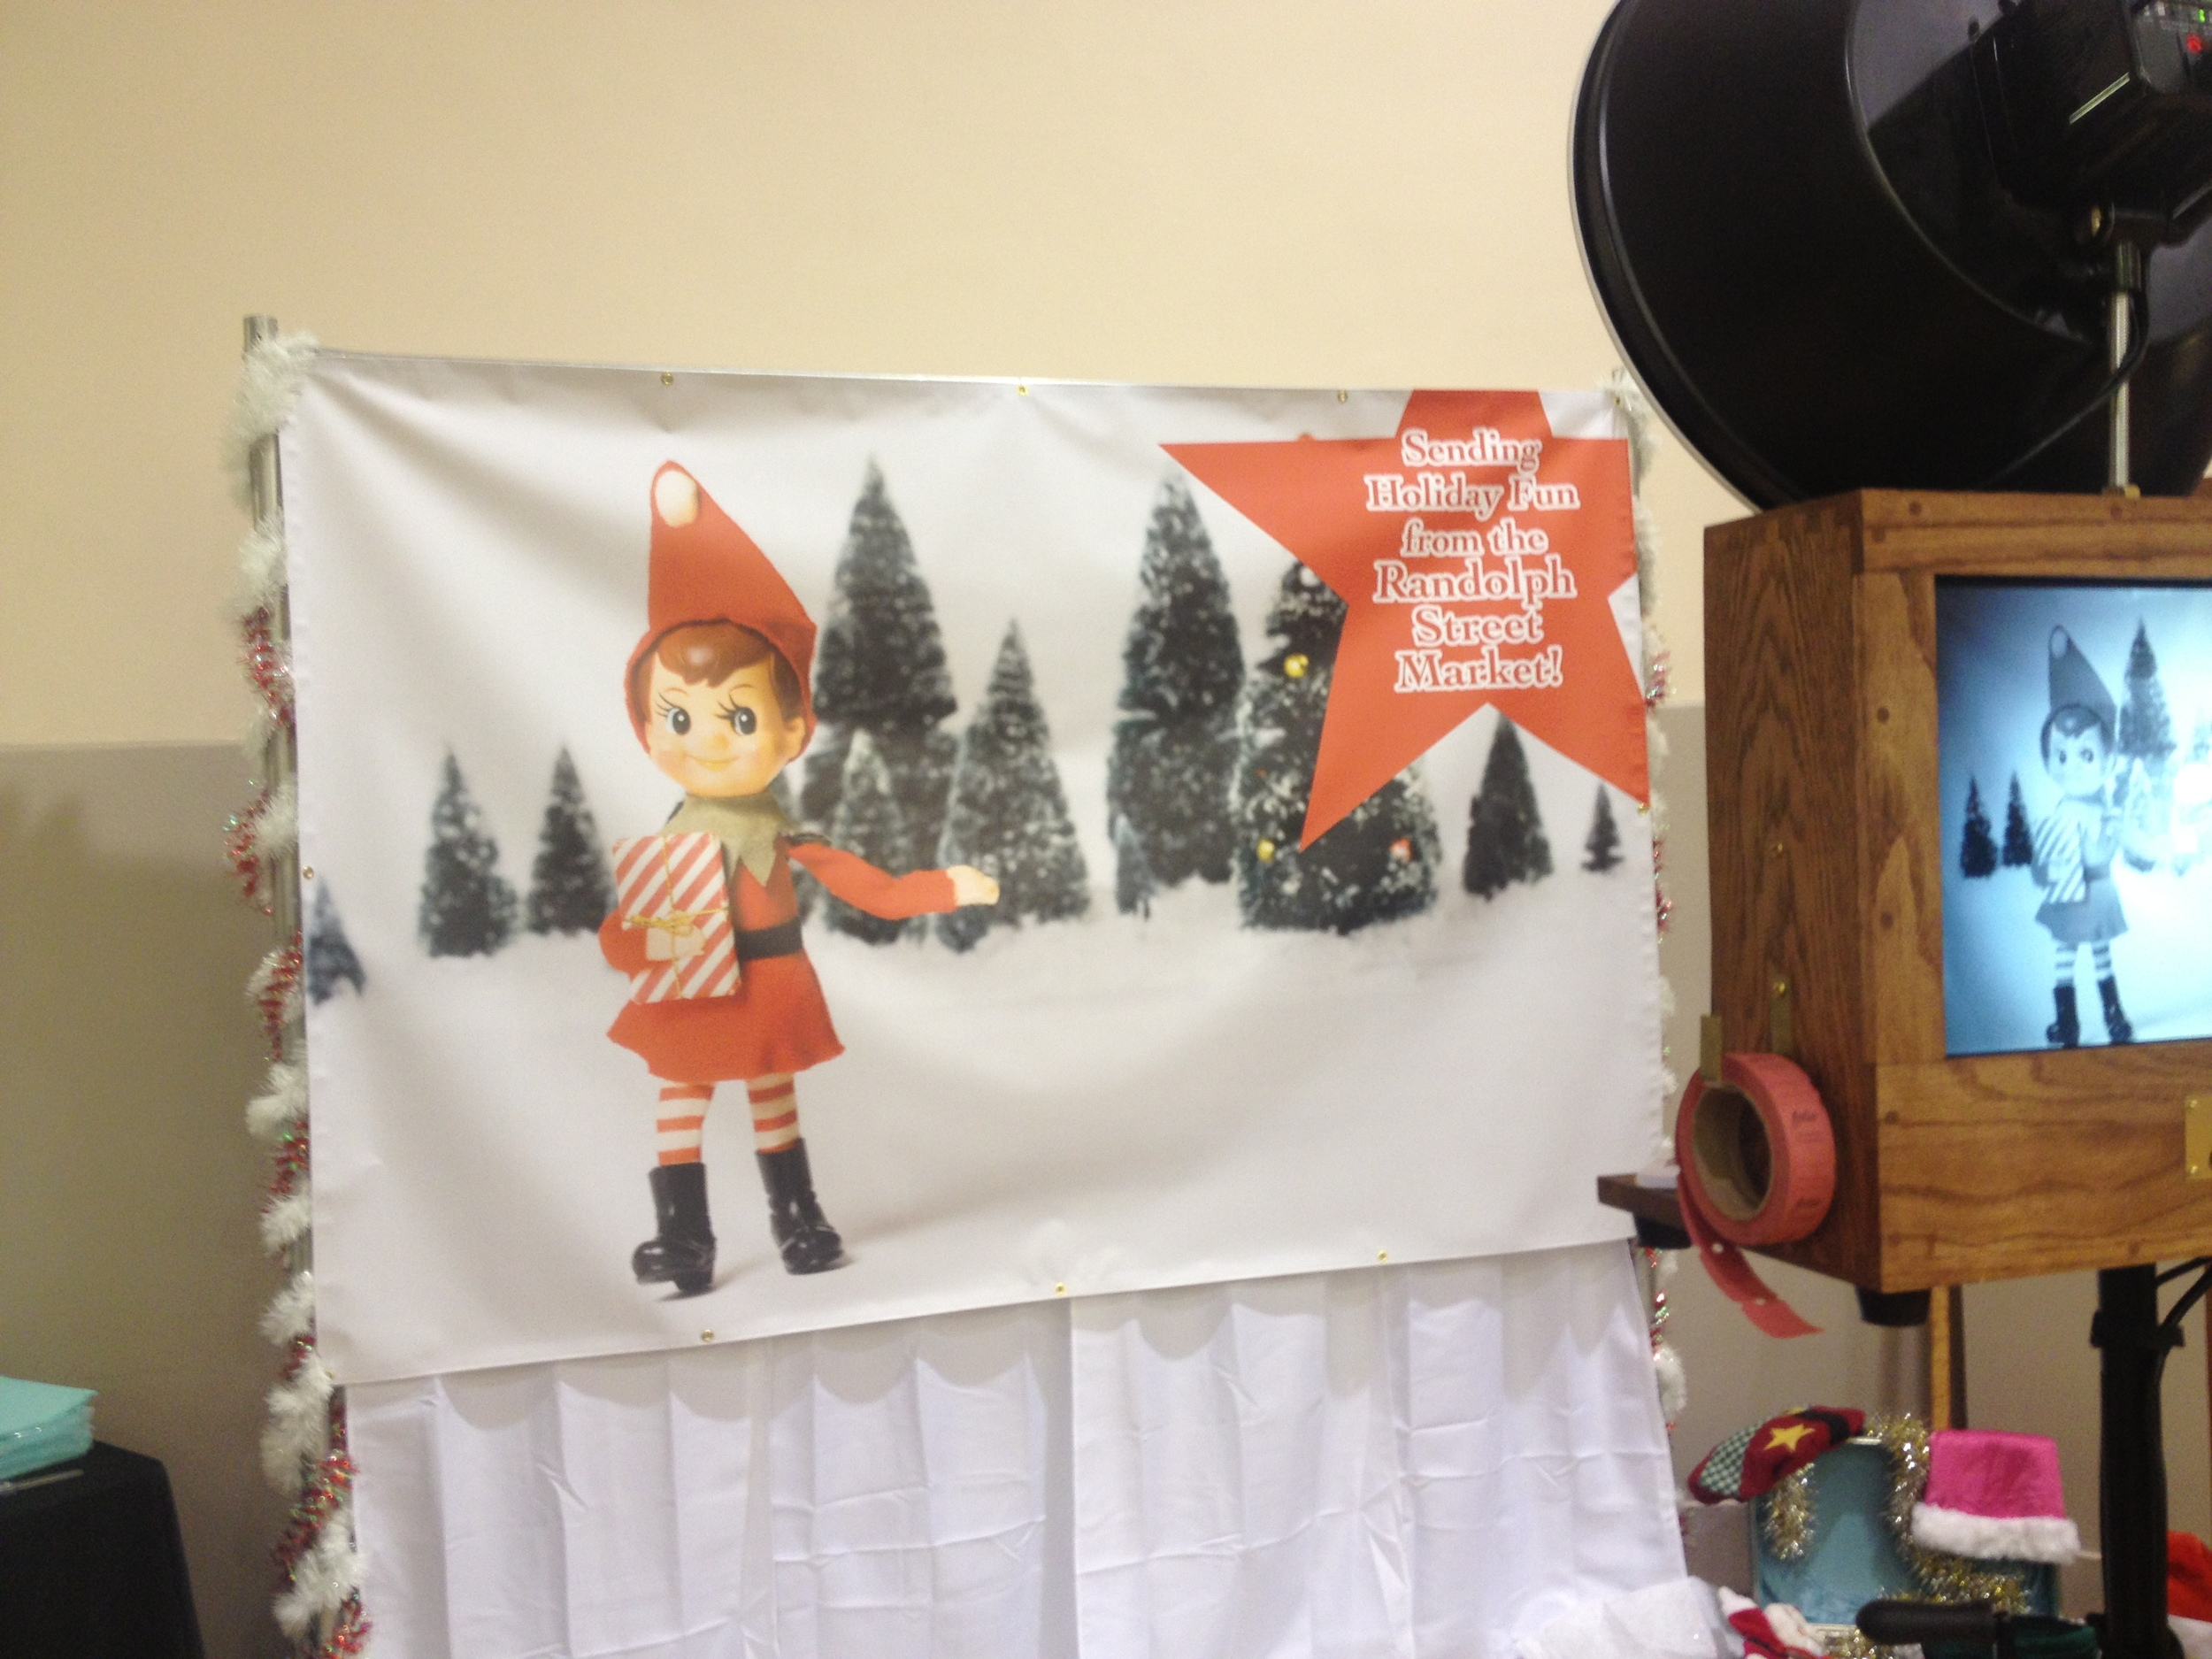 Holiday Market photo booth Elf background.